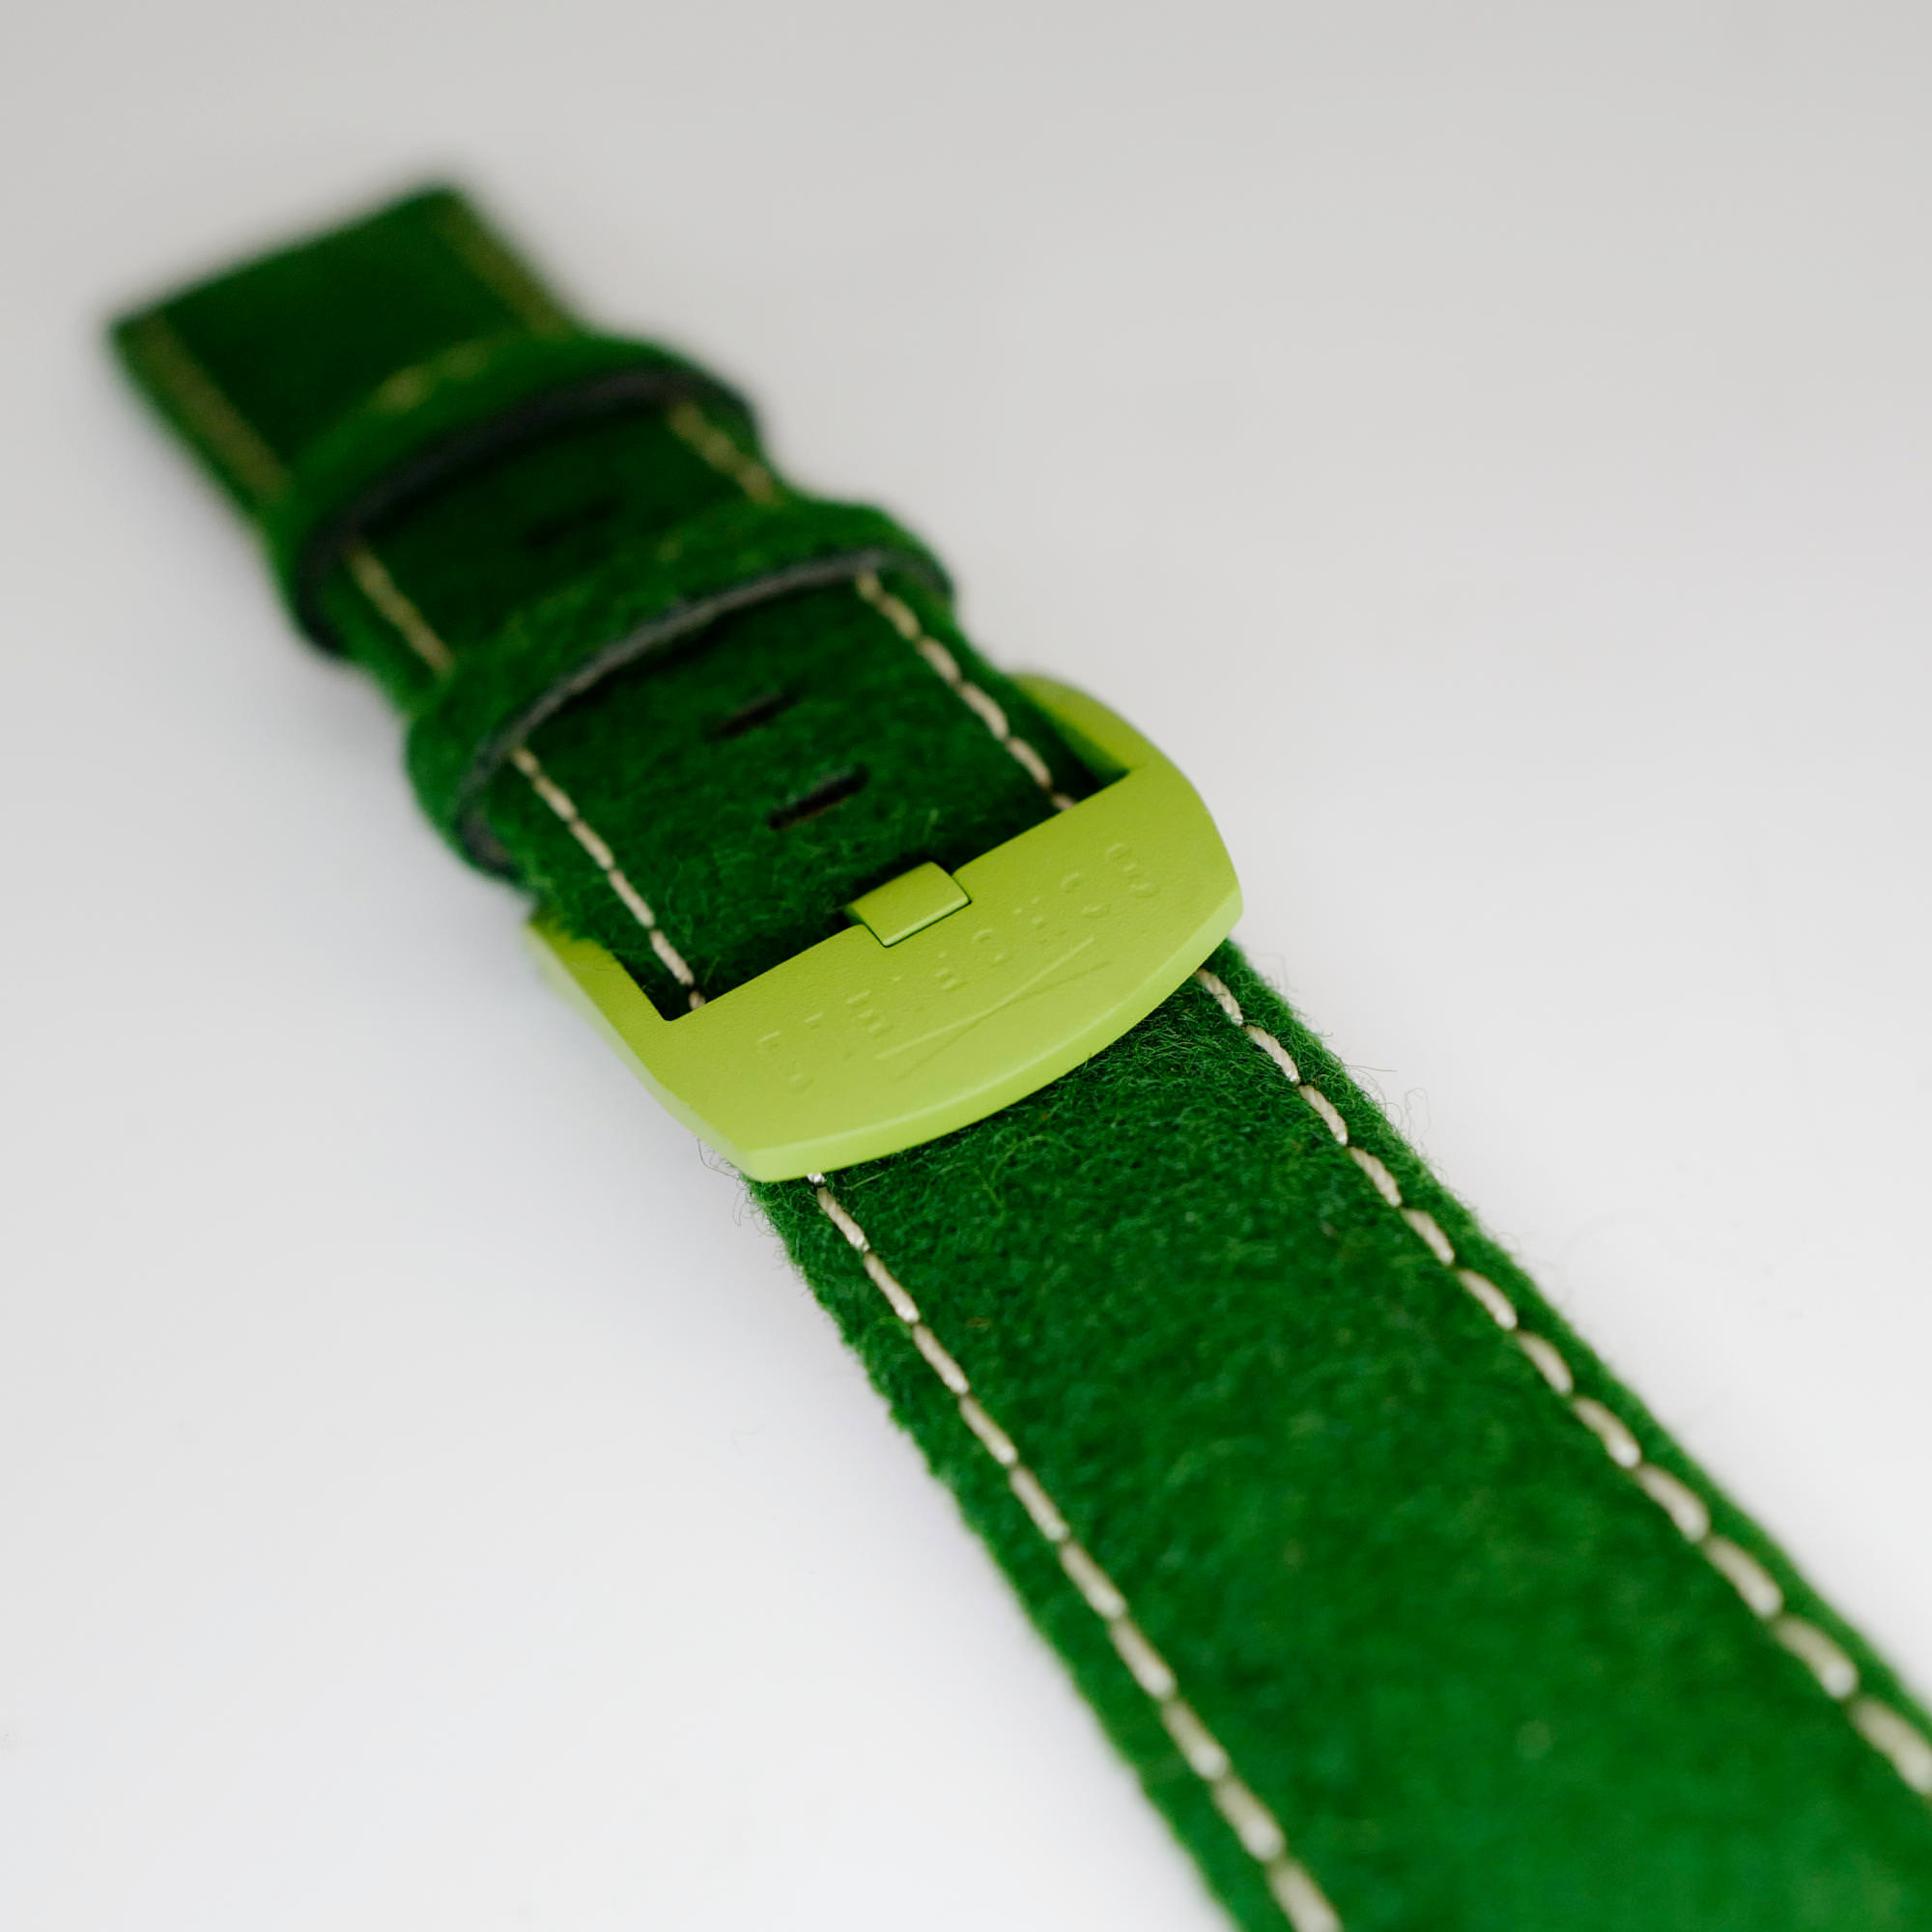 Lurid Green Buckle on Emrald green strap